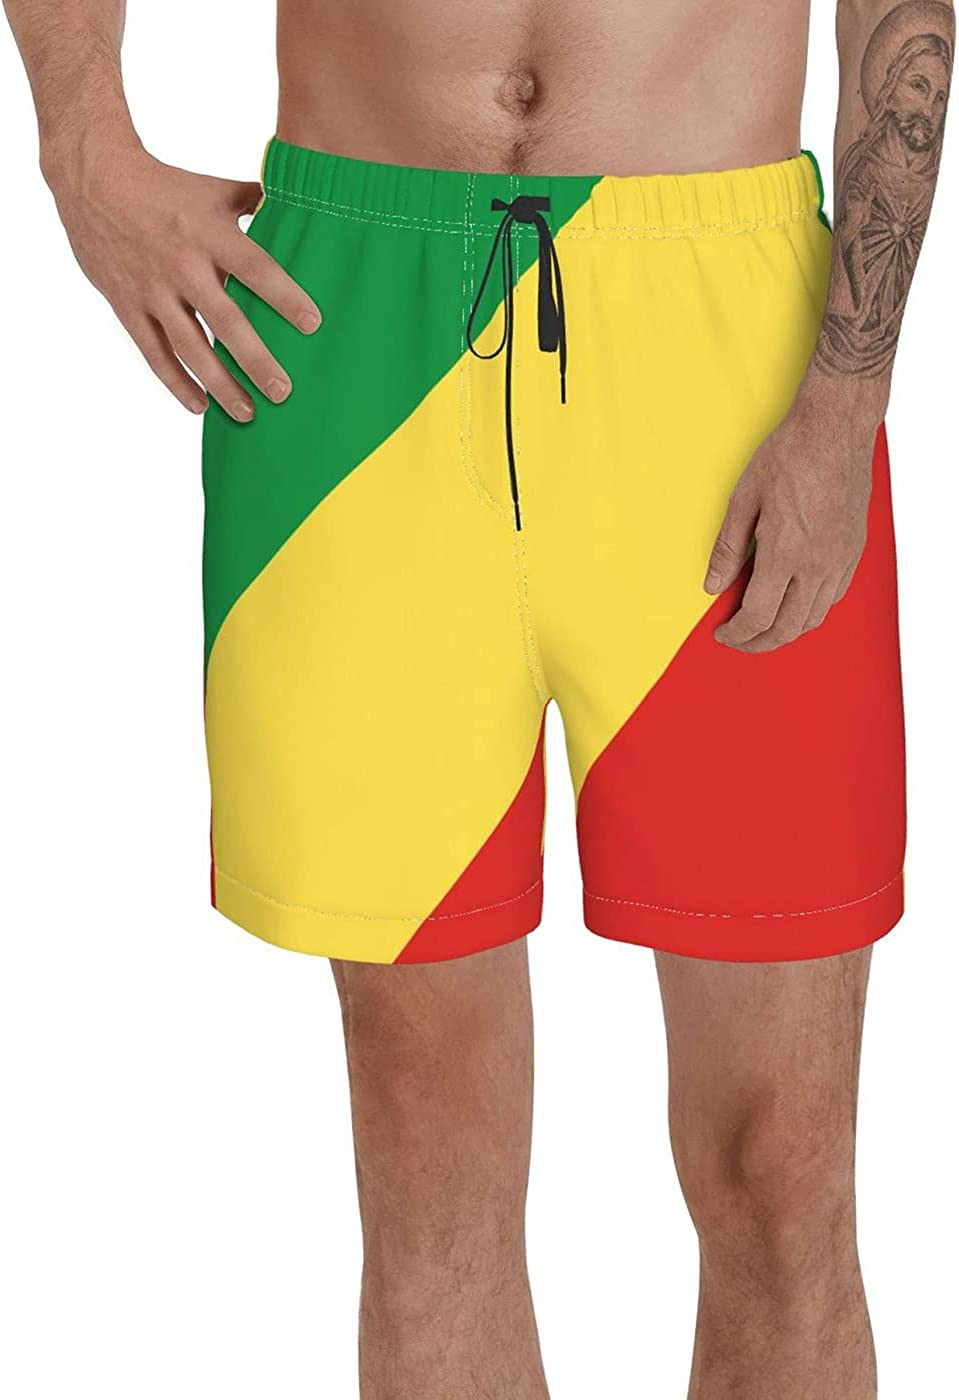 Republic of The Congo Flag Men's 3D Printed Funny Summer Quick Dry Swim Short Board Shorts with